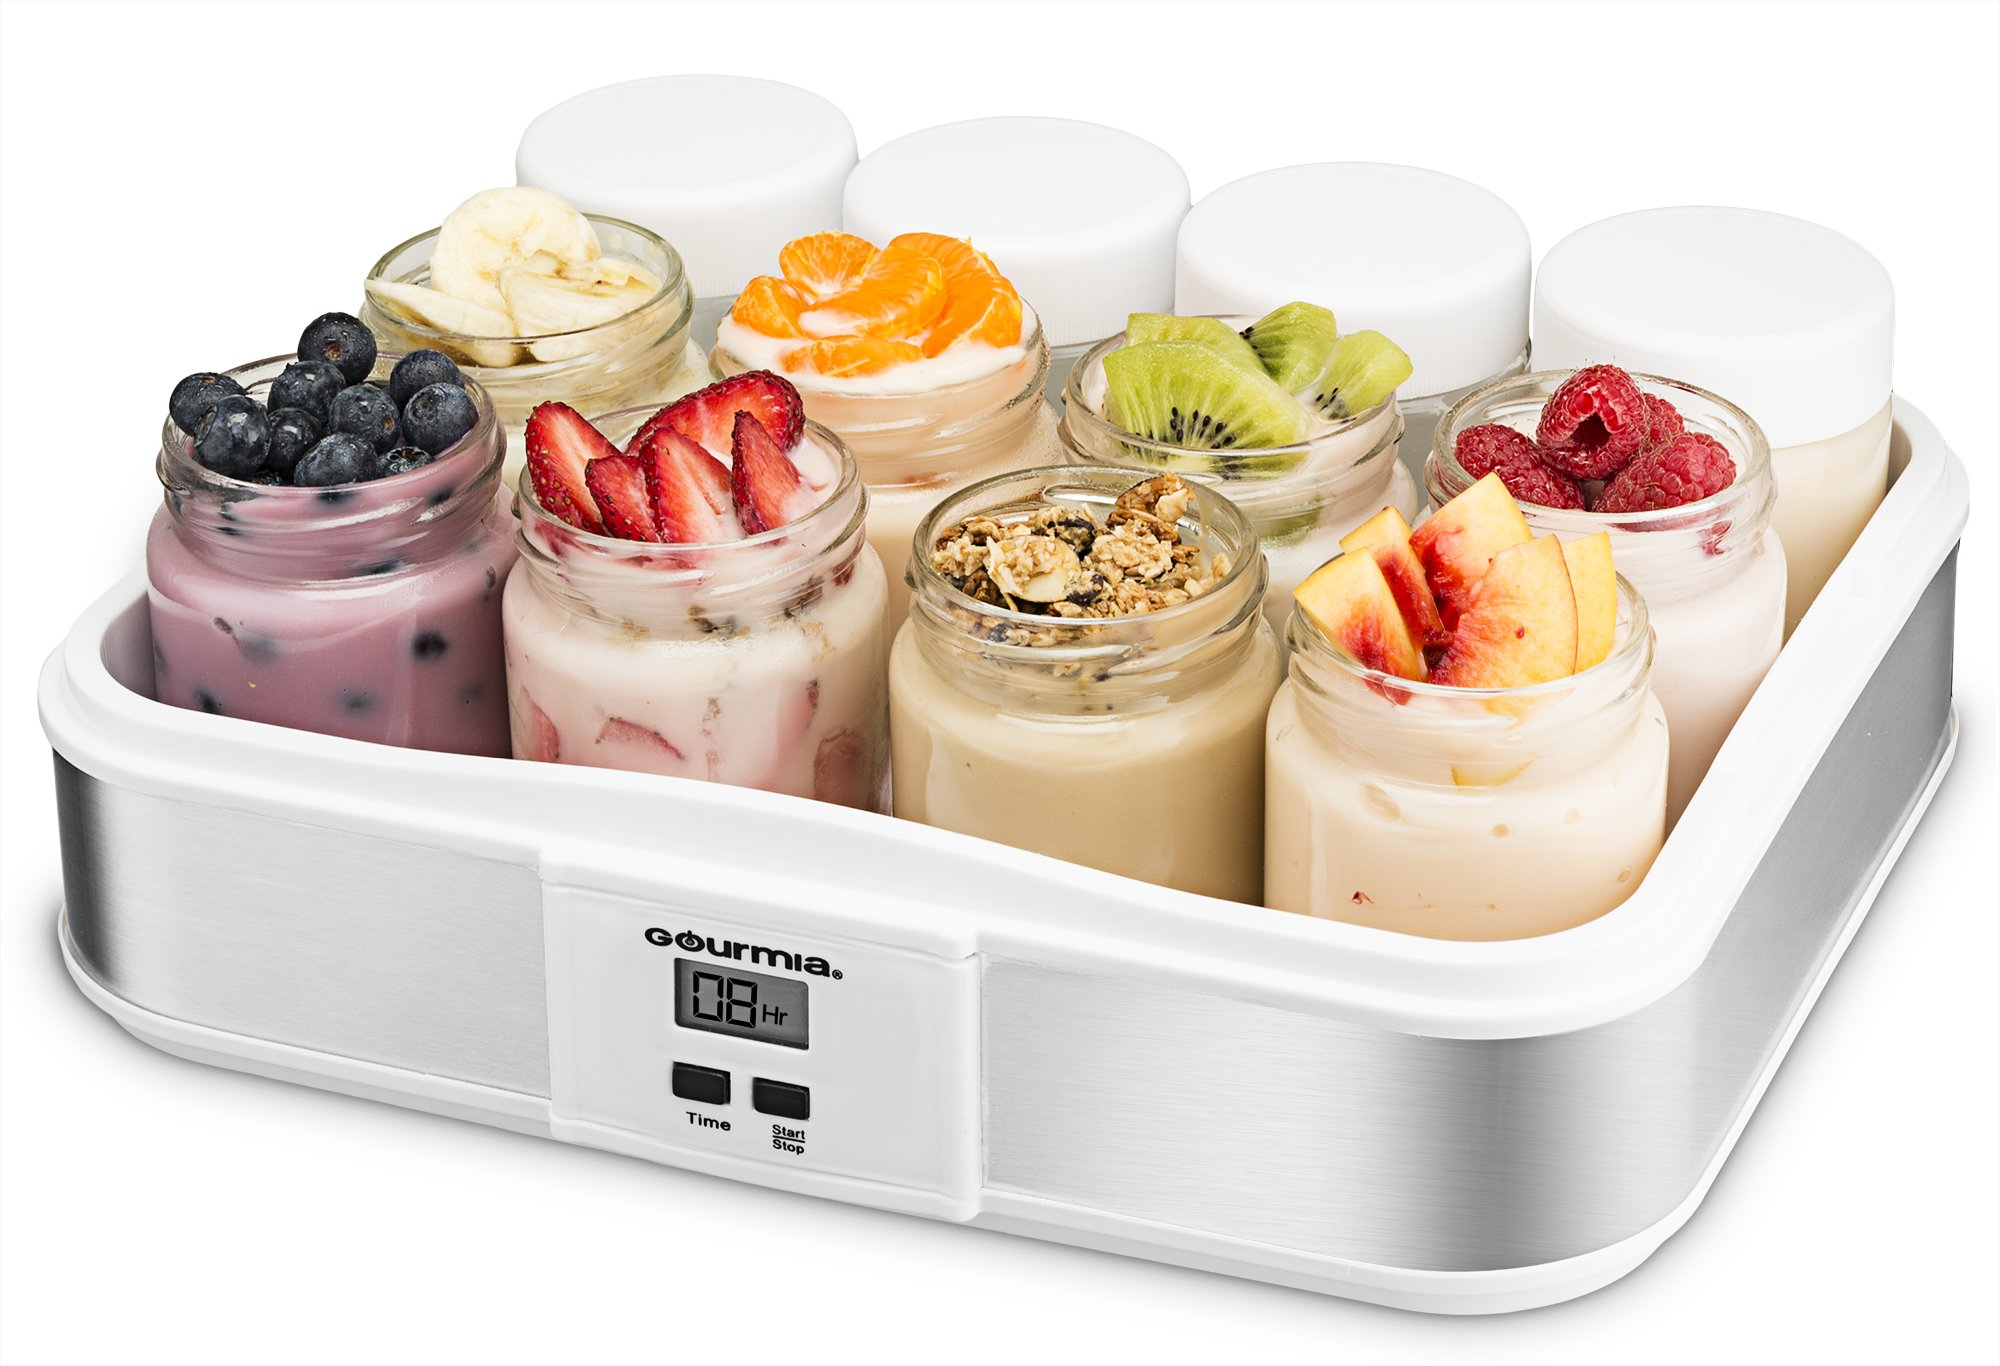 Gourmia GYM1720 Digital Yogurt Maker With 12 Glass Jars Customize To Your Flavor And Thickness, Free Recipe Book Included